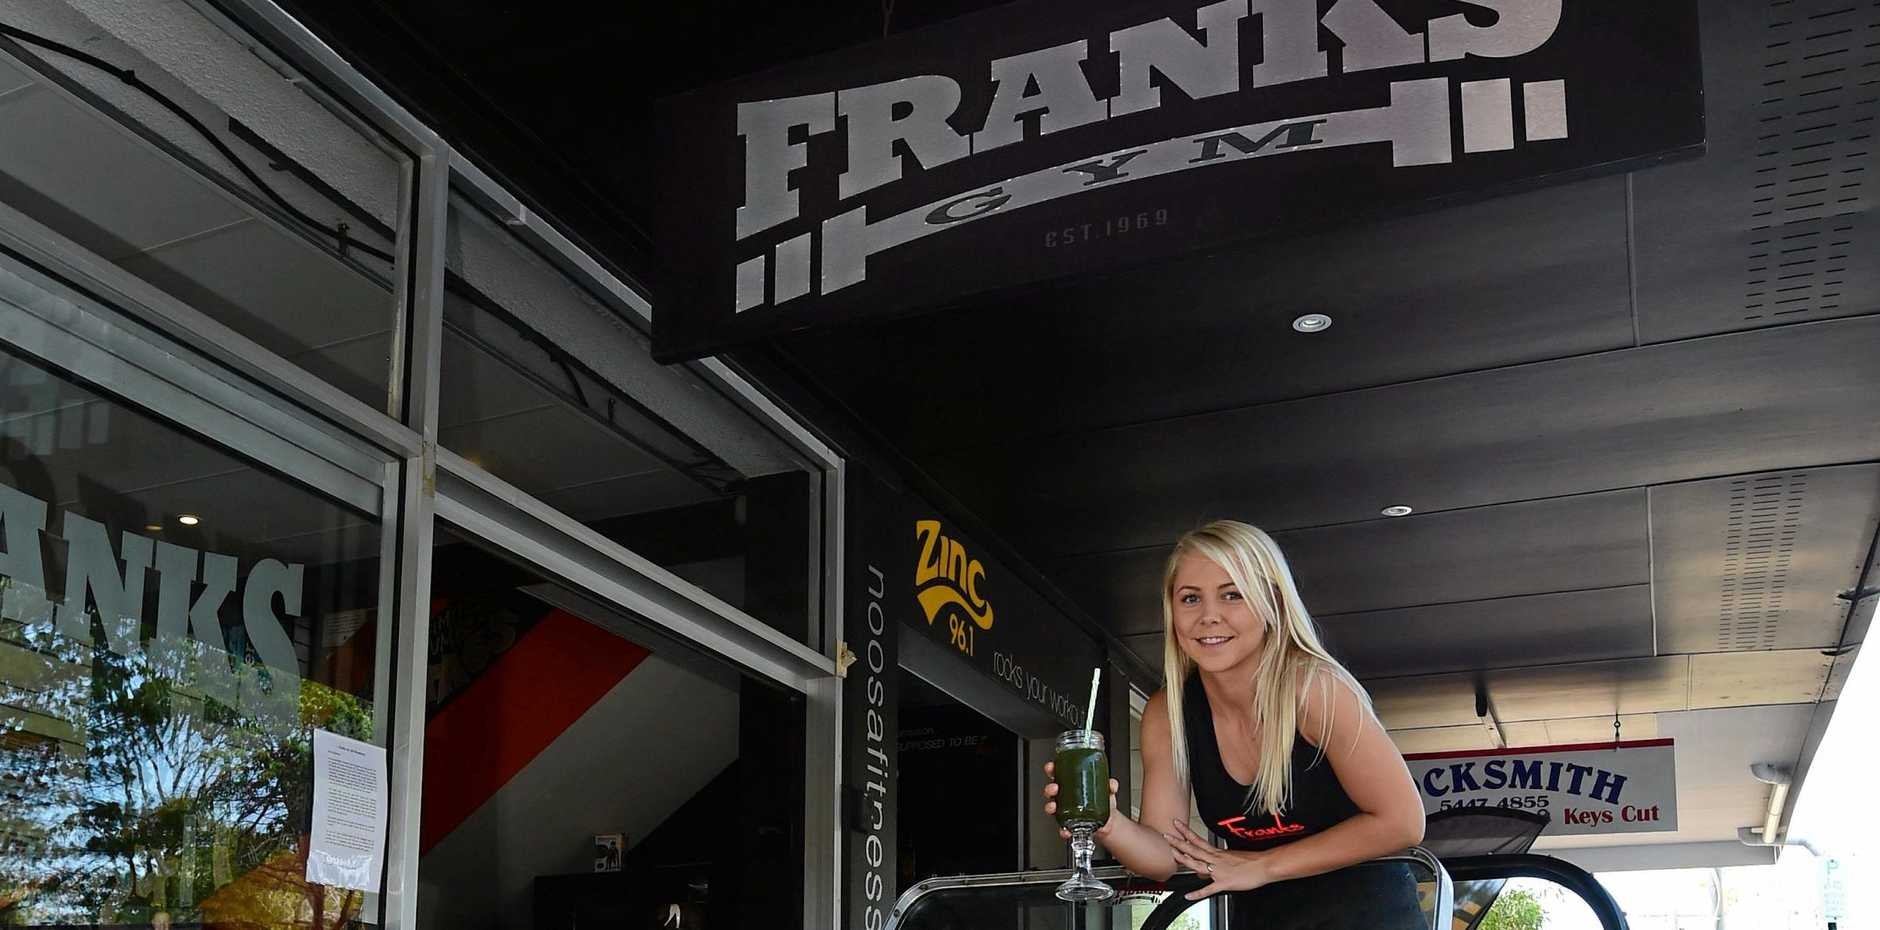 Amy and Kym Everett of Frank's Gym Noosa Junction in 2014, preparing for the gym to open 24 hours a day. It also started serving organic coffee and juice that year. Photo: Iain Curry / Sunshine Coast Daily